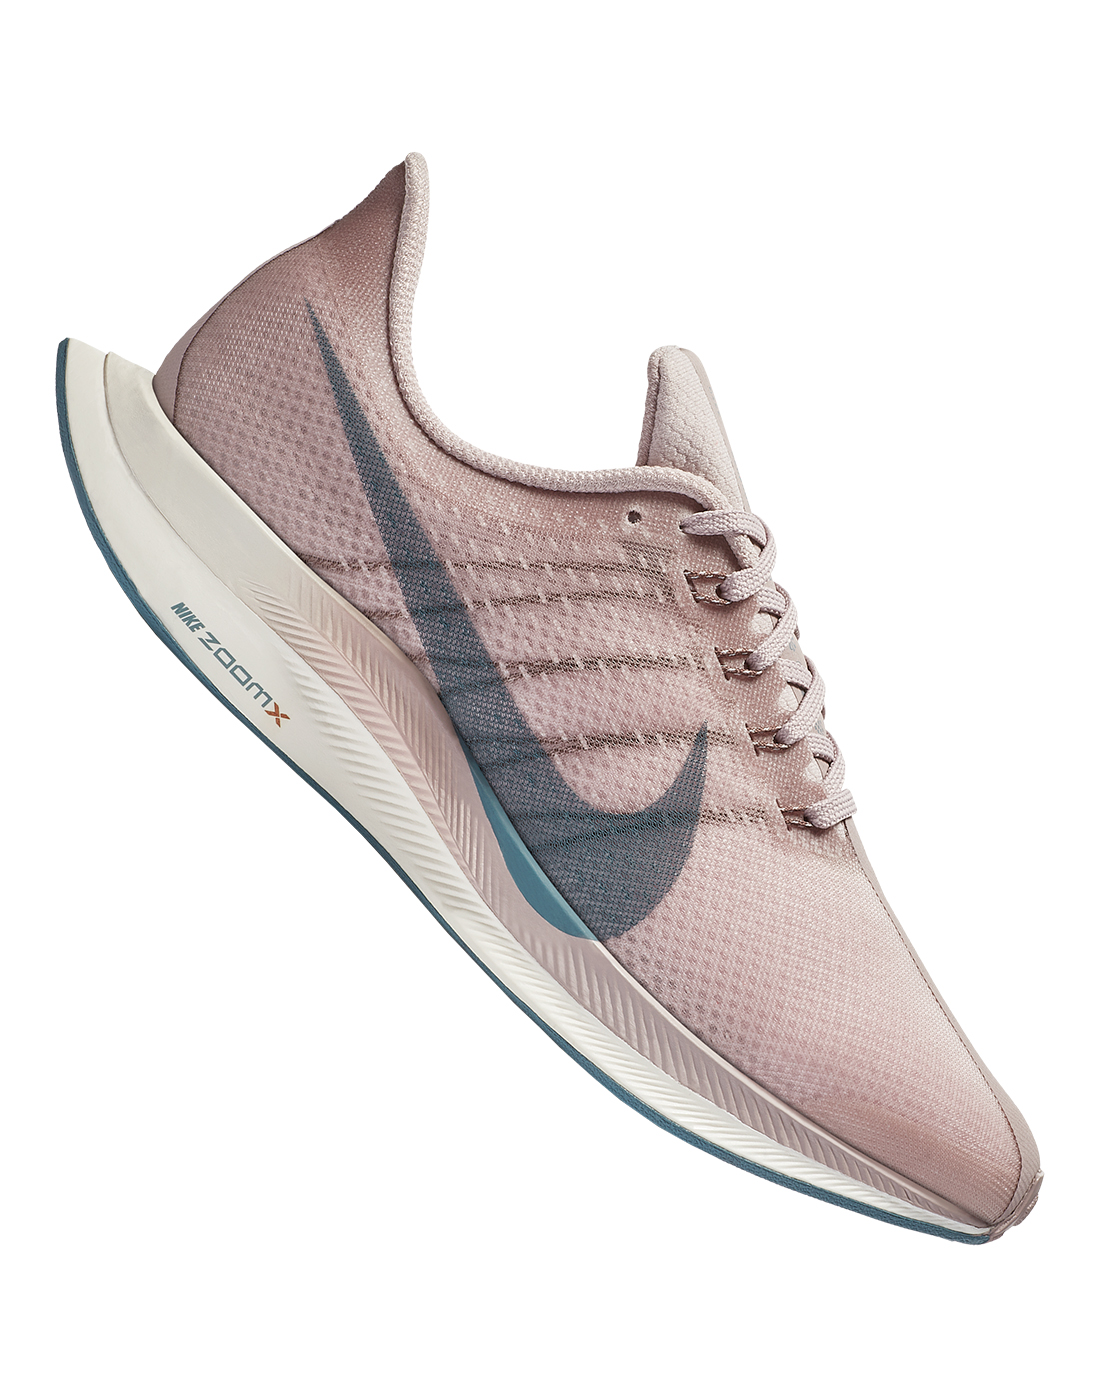 d5c3701cd6e01 Women s Pink Nike Pegasus 35 Running Shoes